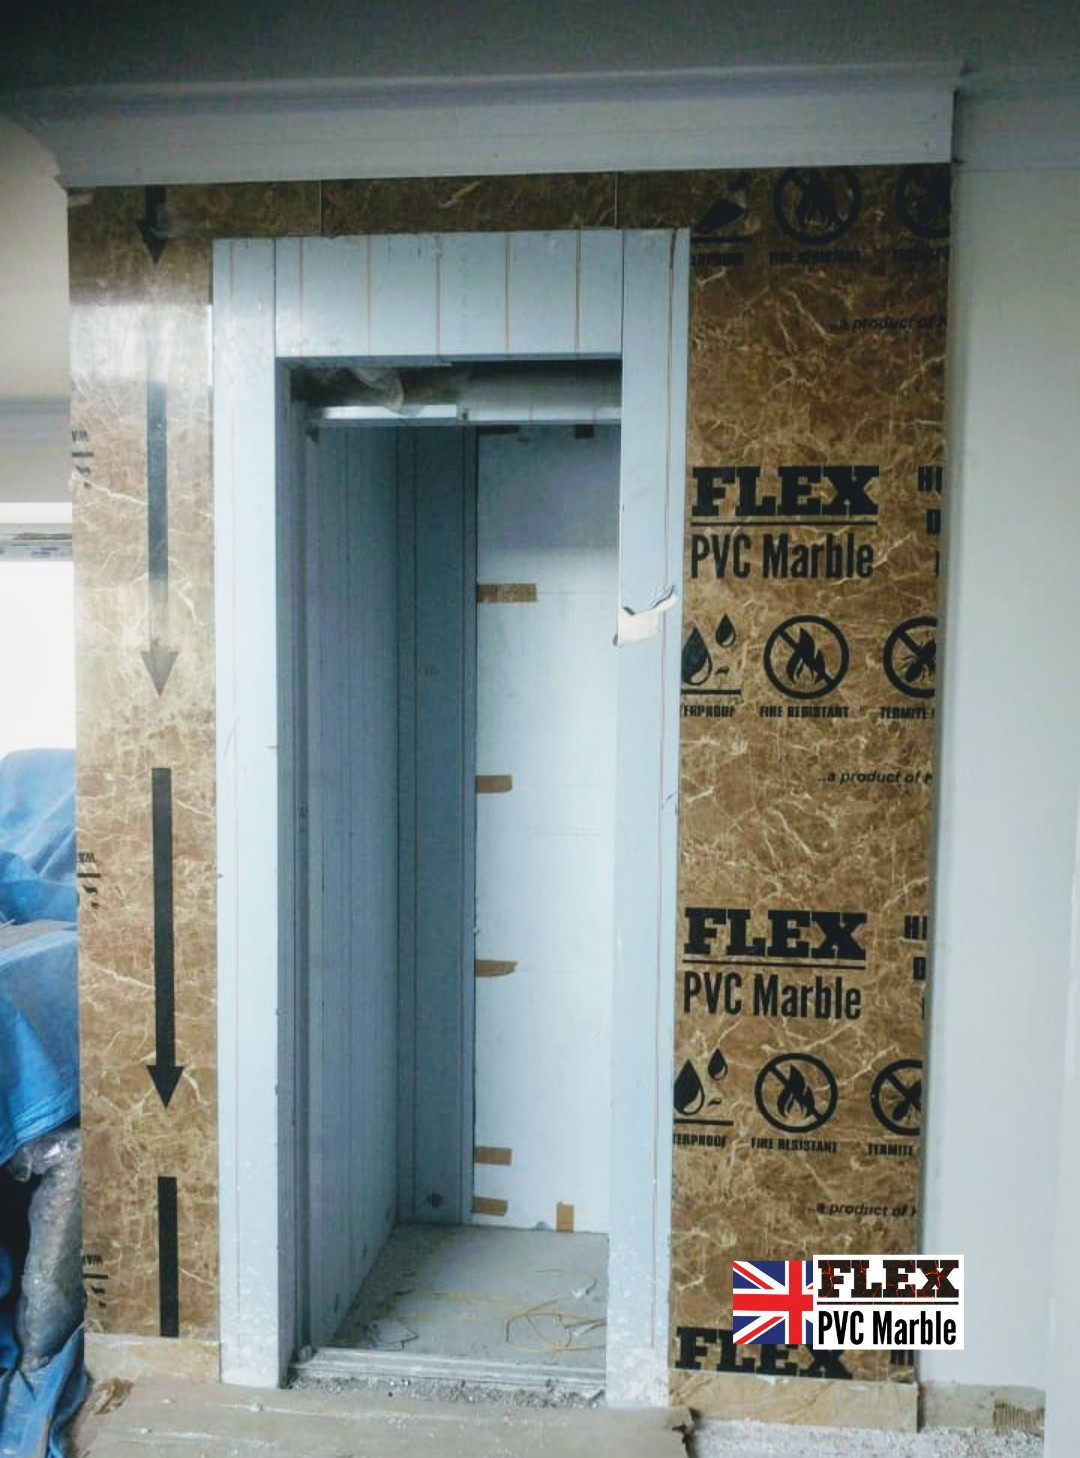 FLEX MARBLE LIFT DECORATION PVC MARBLE U